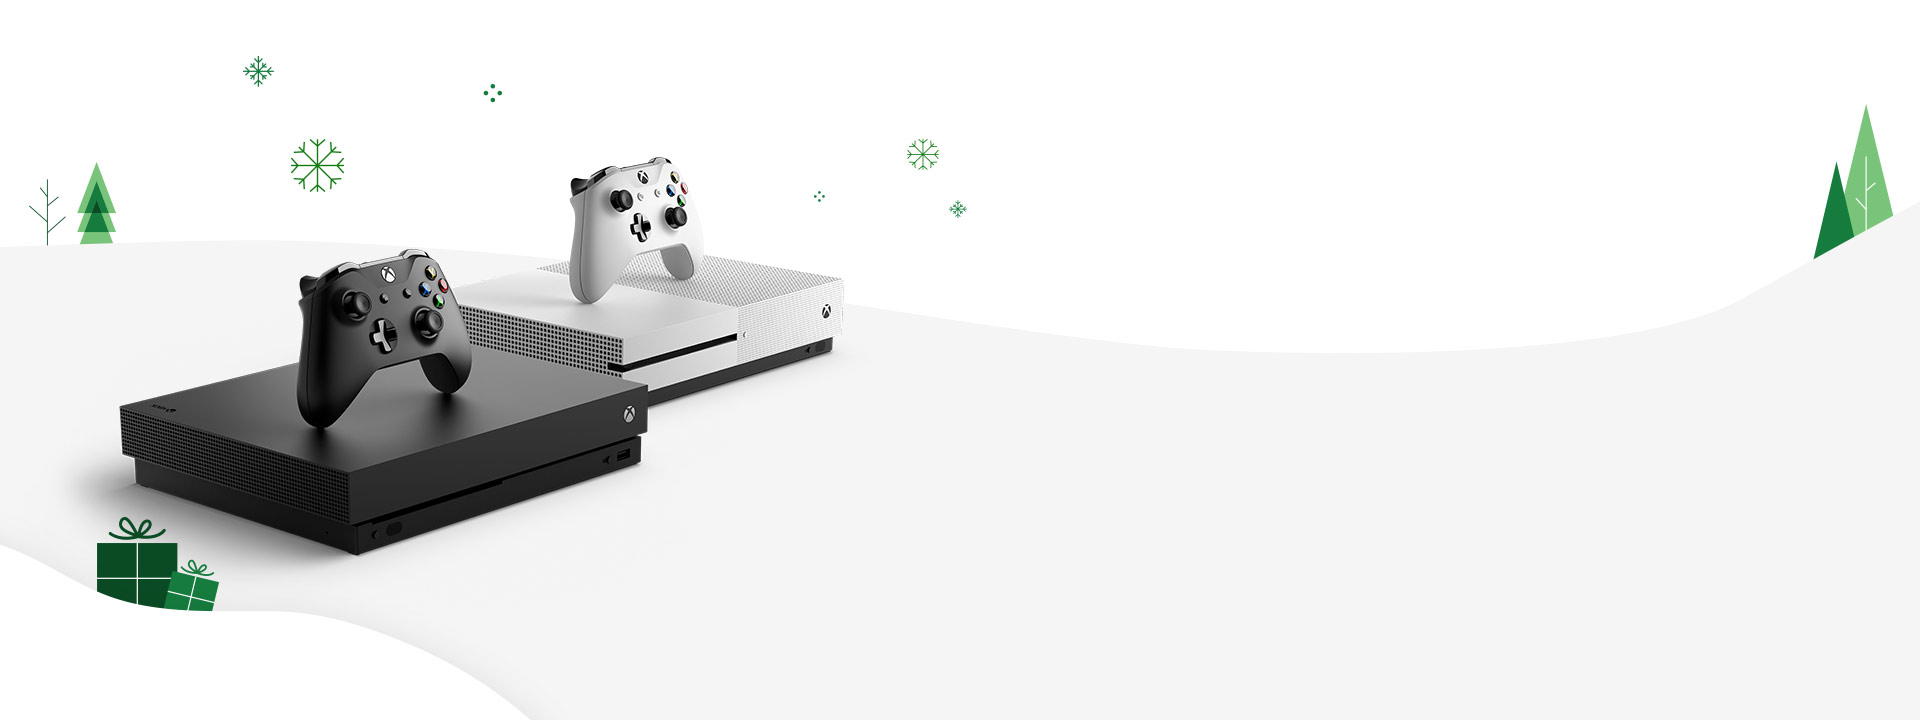 Side view of the Xbox One S and Xbox One X and Xbox Wireless Controller